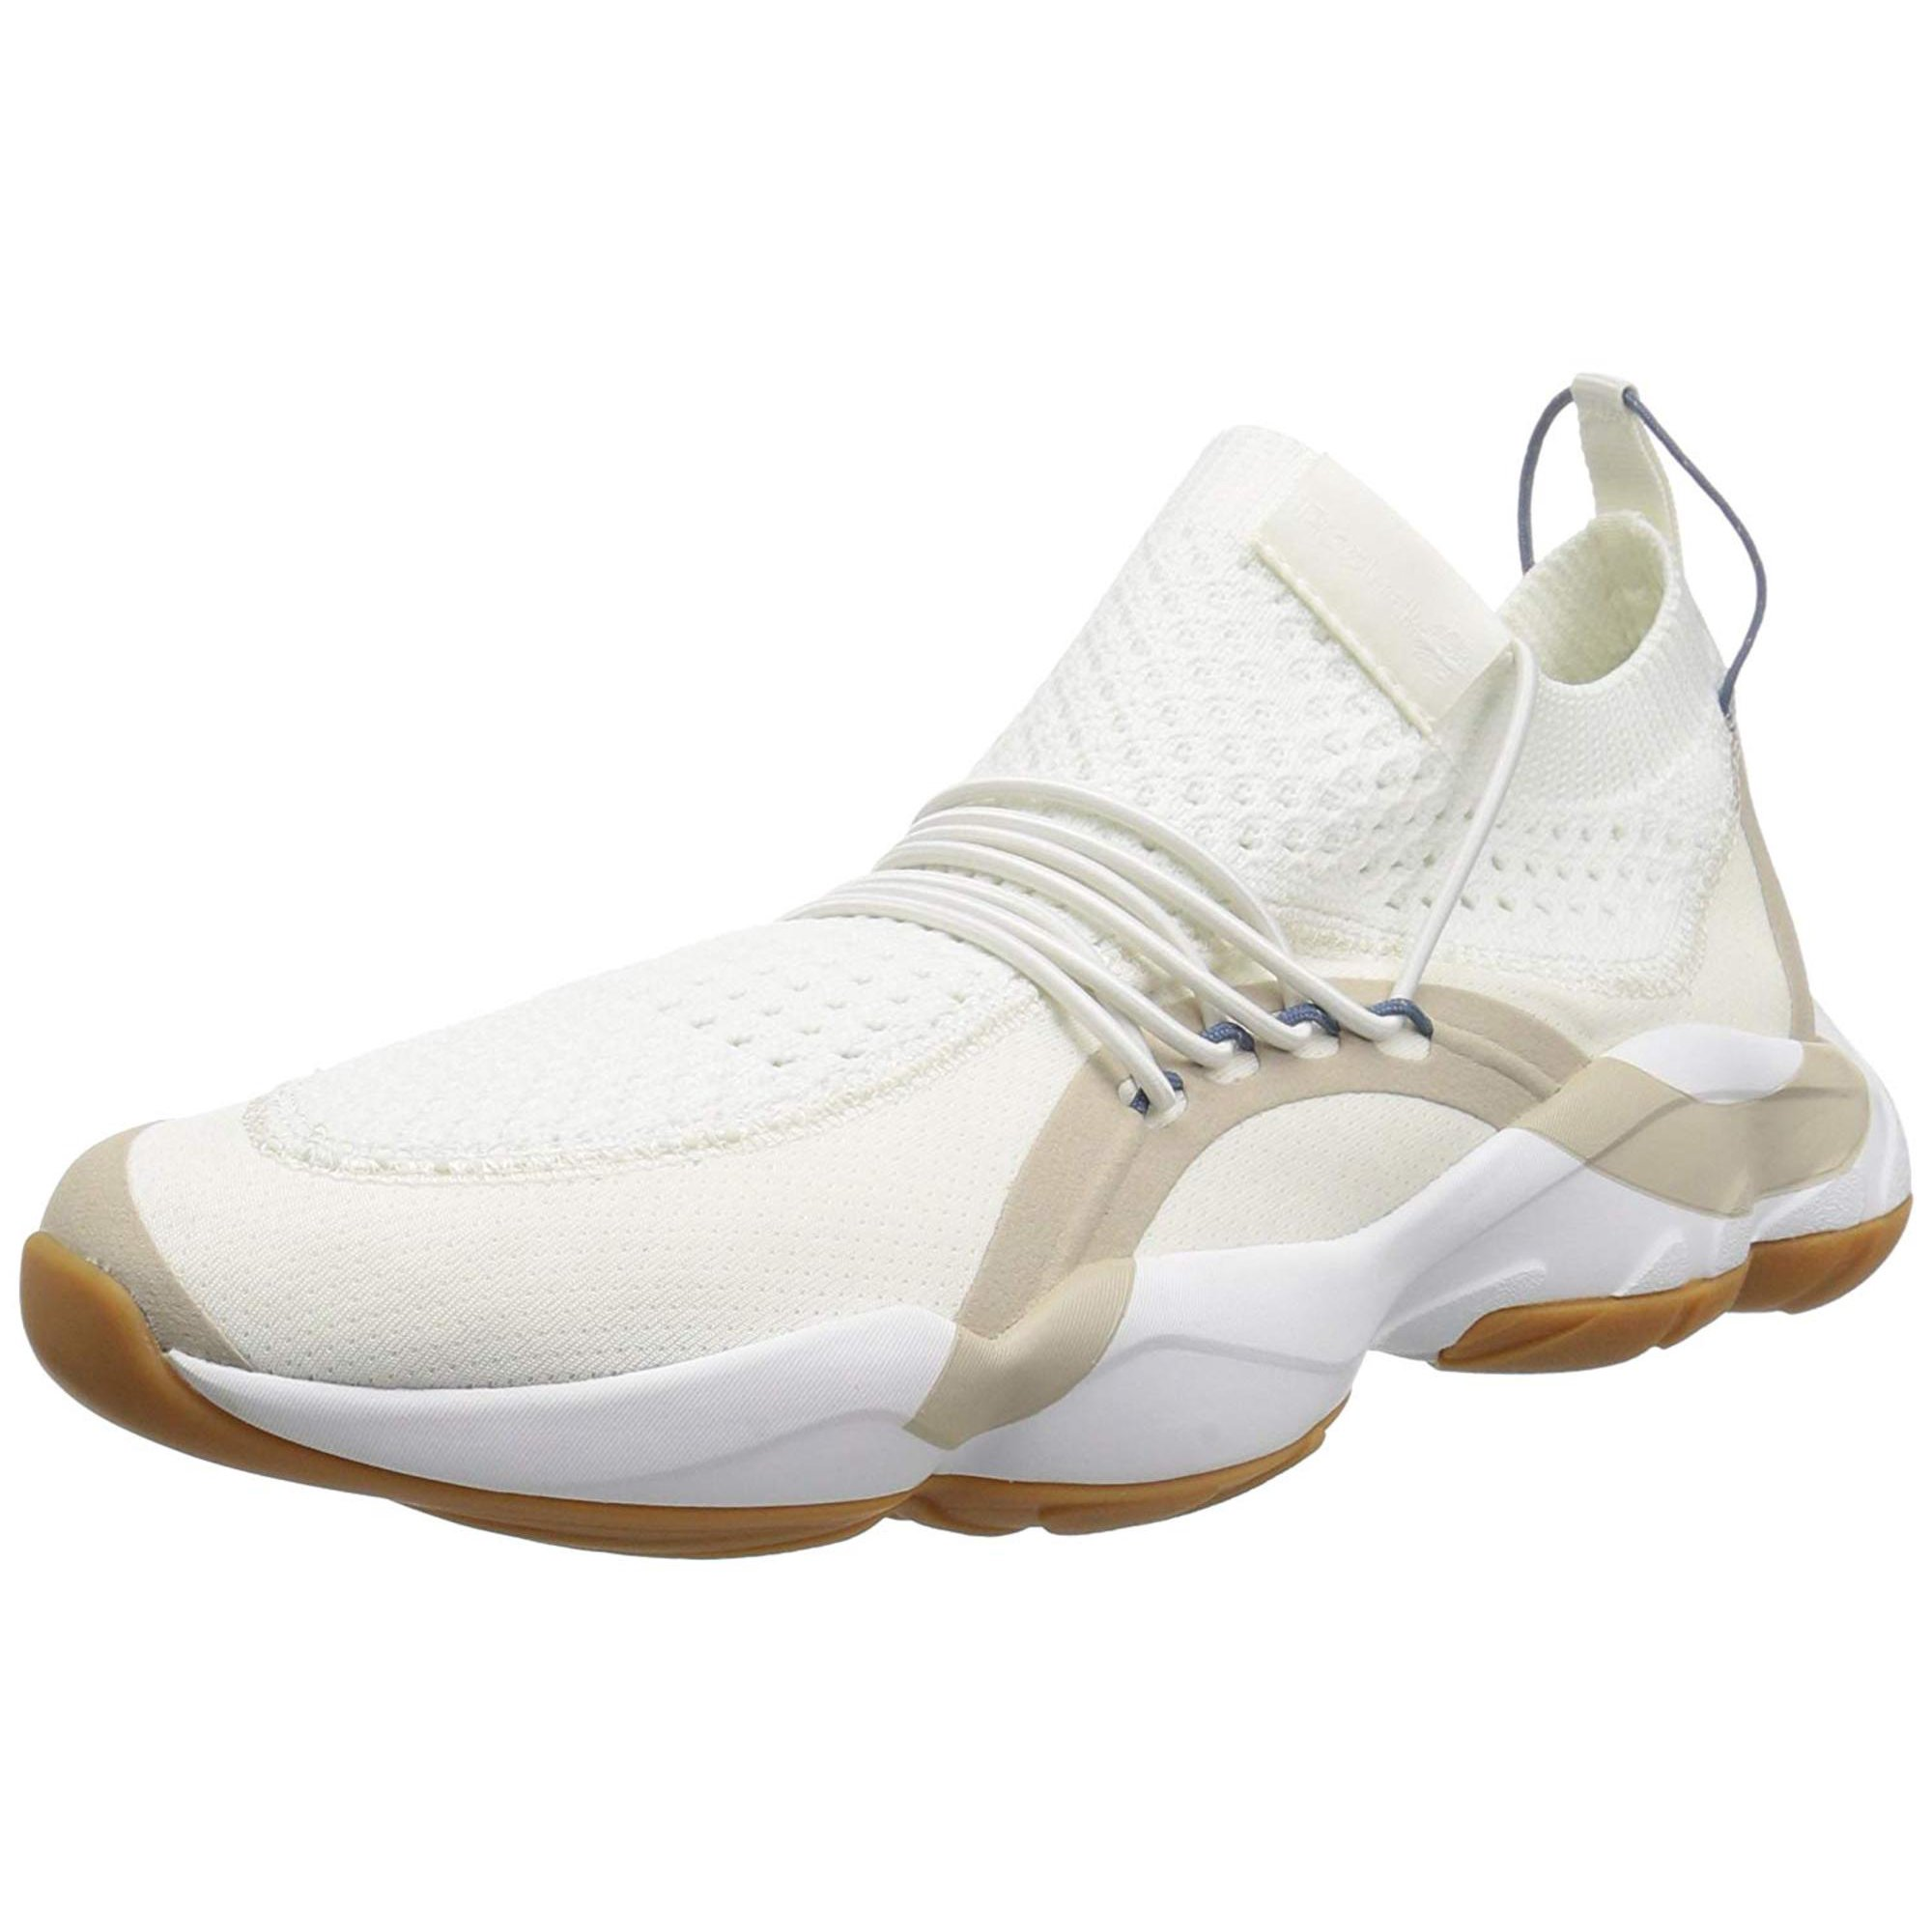 a69a591b03e230 Reebok Men s DMX Fusion Cross Trainer